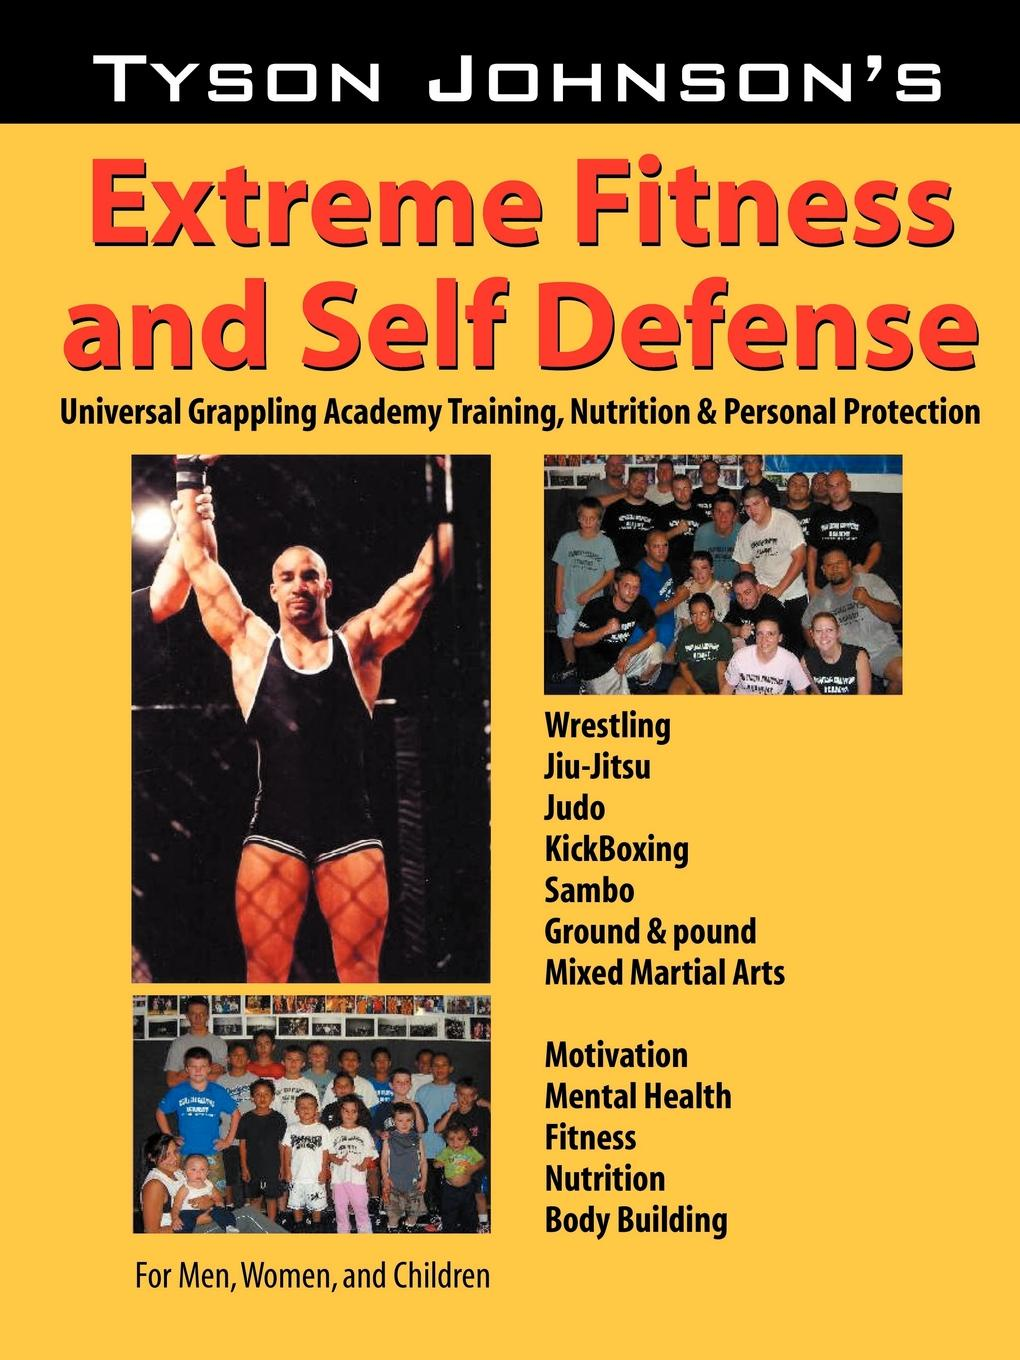 Tyson Johnson Tyson Johnson's Extreme Fitness & Self-Defense warren brussee the great depression of debt survival techniques for every investor